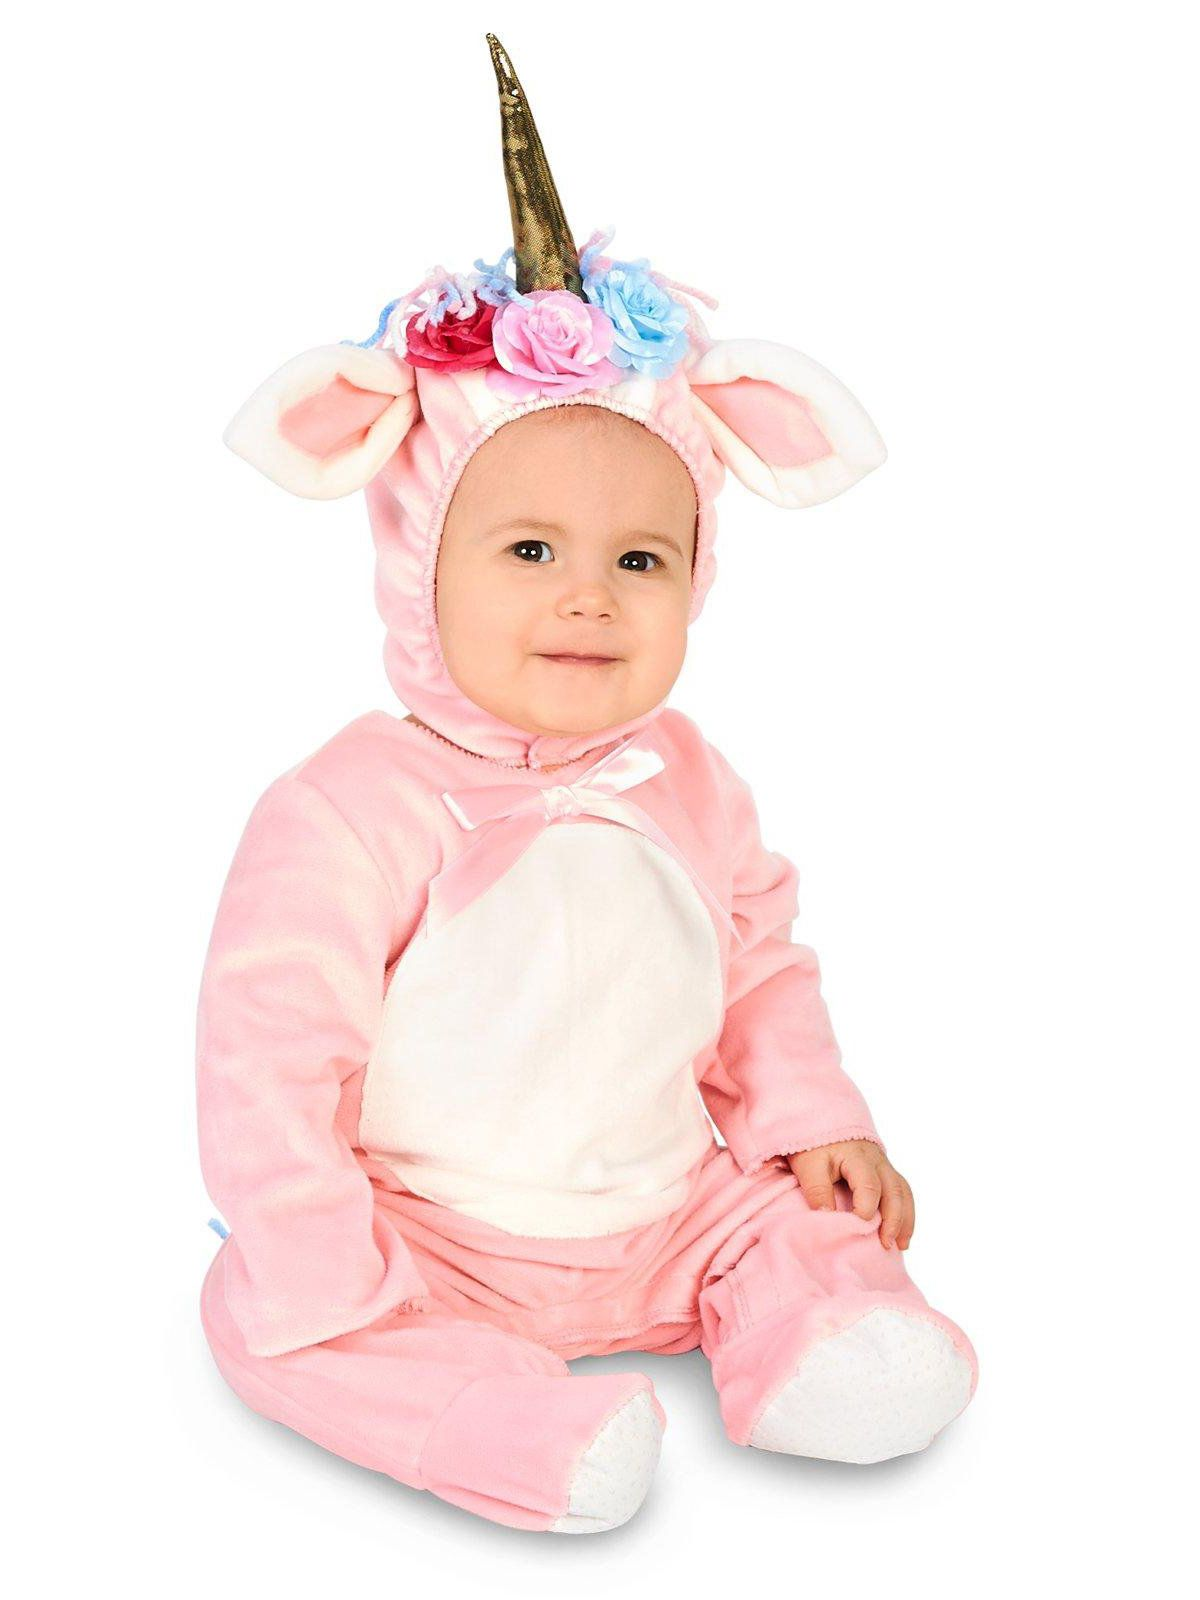 Baby Enchanted Pink Unicorn Costume For Babies  sc 1 st  Wholesale Halloween Costumes & Baby Enchanted Pink Unicorn Costume For Babies | Wholesale Halloween ...